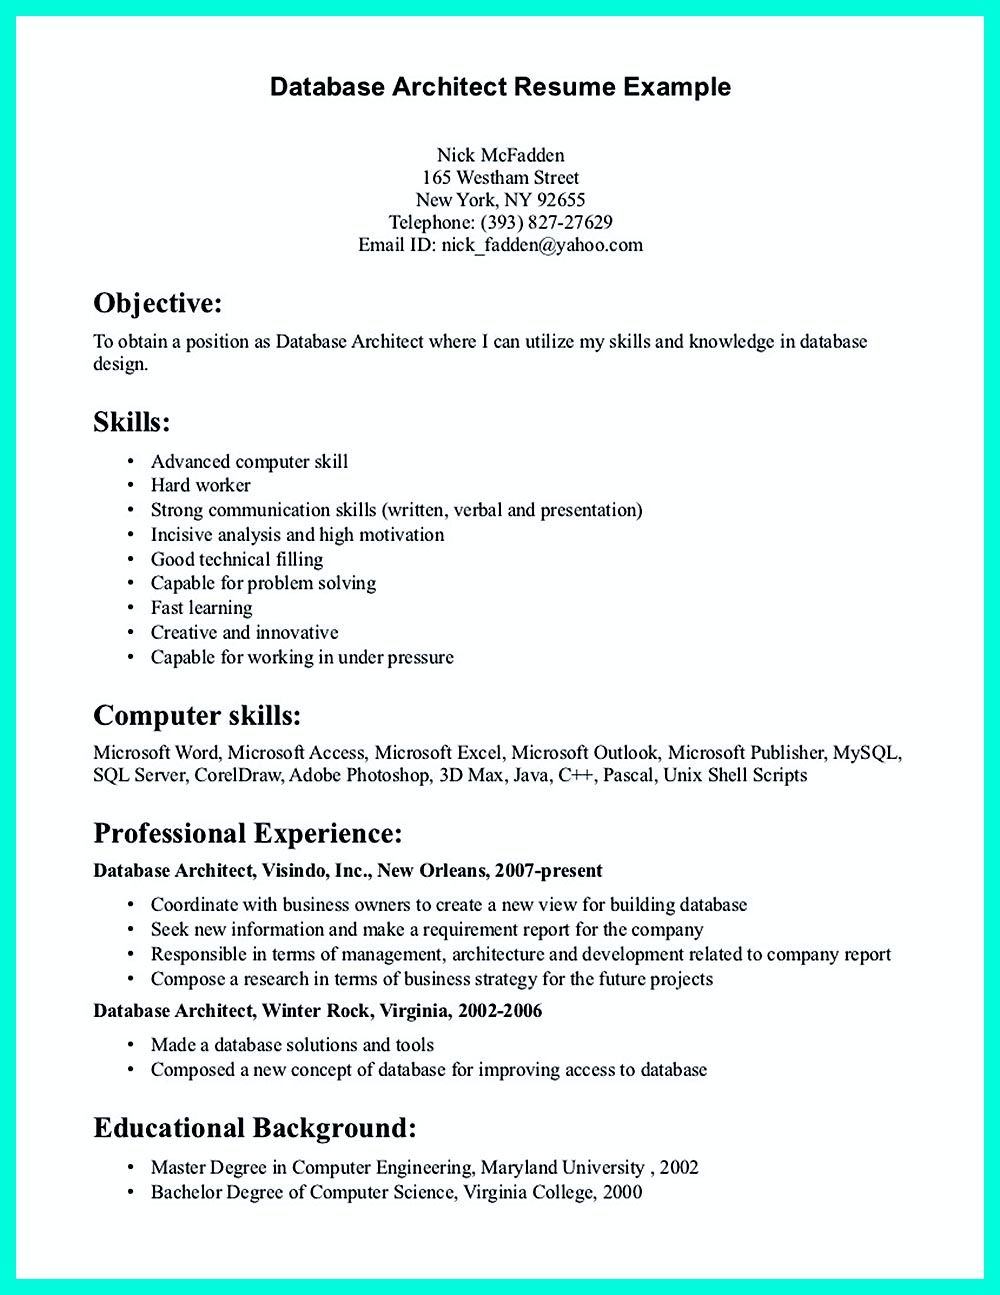 Enterprise Data Architect Sample Resume Excellent Database Architect Resume  Template Plus Skills And .  Architecture Resume Examples